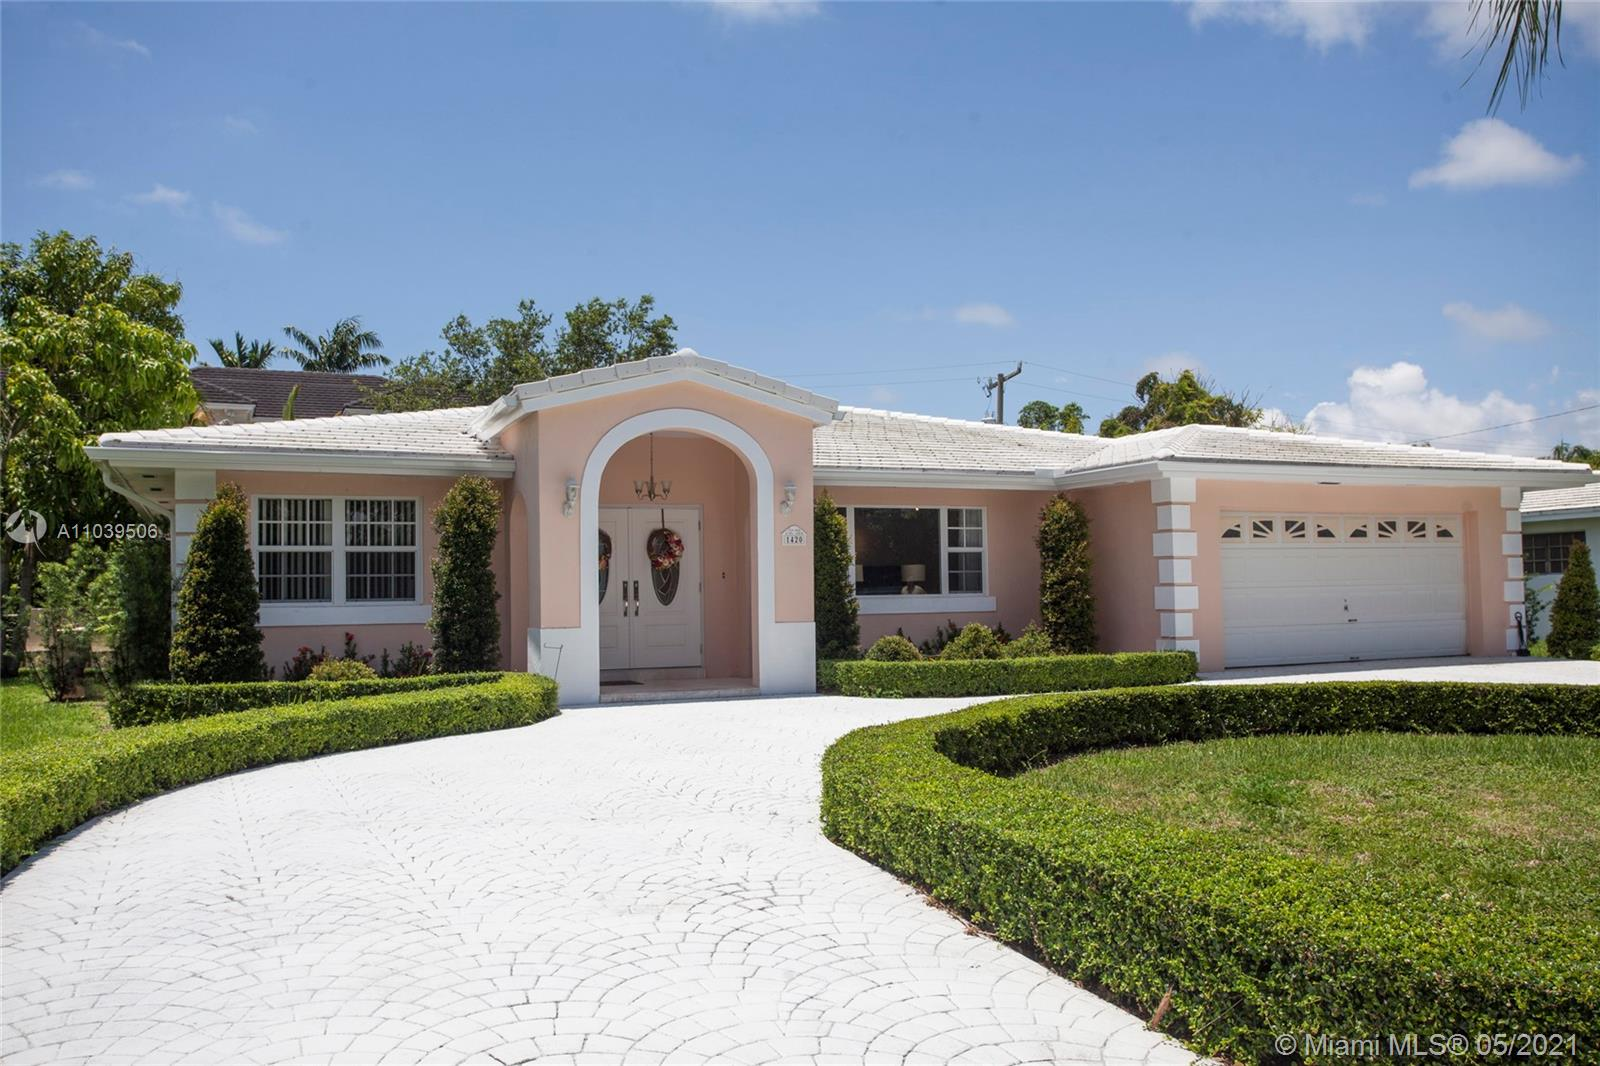 DON'T MISS THIS OPPORTUNITY TO LIVE IN EXCLUSIVE GATED/SECURE - GABLES-BY-THE-SEA COMMUNITY! PINECREST ELEMENTARY! WALK YOUR CHILDREN TO GABLES-BY-THE-SEA PARK OR GULLIVER ACADEMY; BRITE & SPACIOUS LIVINGROOM, DINING, FAMILY; 2YR STAINLESS STEEL APPLIANCES; MARBLE FLOORS; SPACIOUS 4 BED / 4 FULL BATHS; MASTER WALK IN CLOSET+; 2 CAR GARAGE; NEW IMPACT DOORS & WINDOWS THROUGH-OUT, NEW ROOF, NEWLY RESURFACED POOL, CHILD SAFETY FENCE; COMPLETELY PAINTED, THRU OUT; PATIO, GARDEN AREA. GREAT FOR ENTERTAINING! WON'T LAST!!